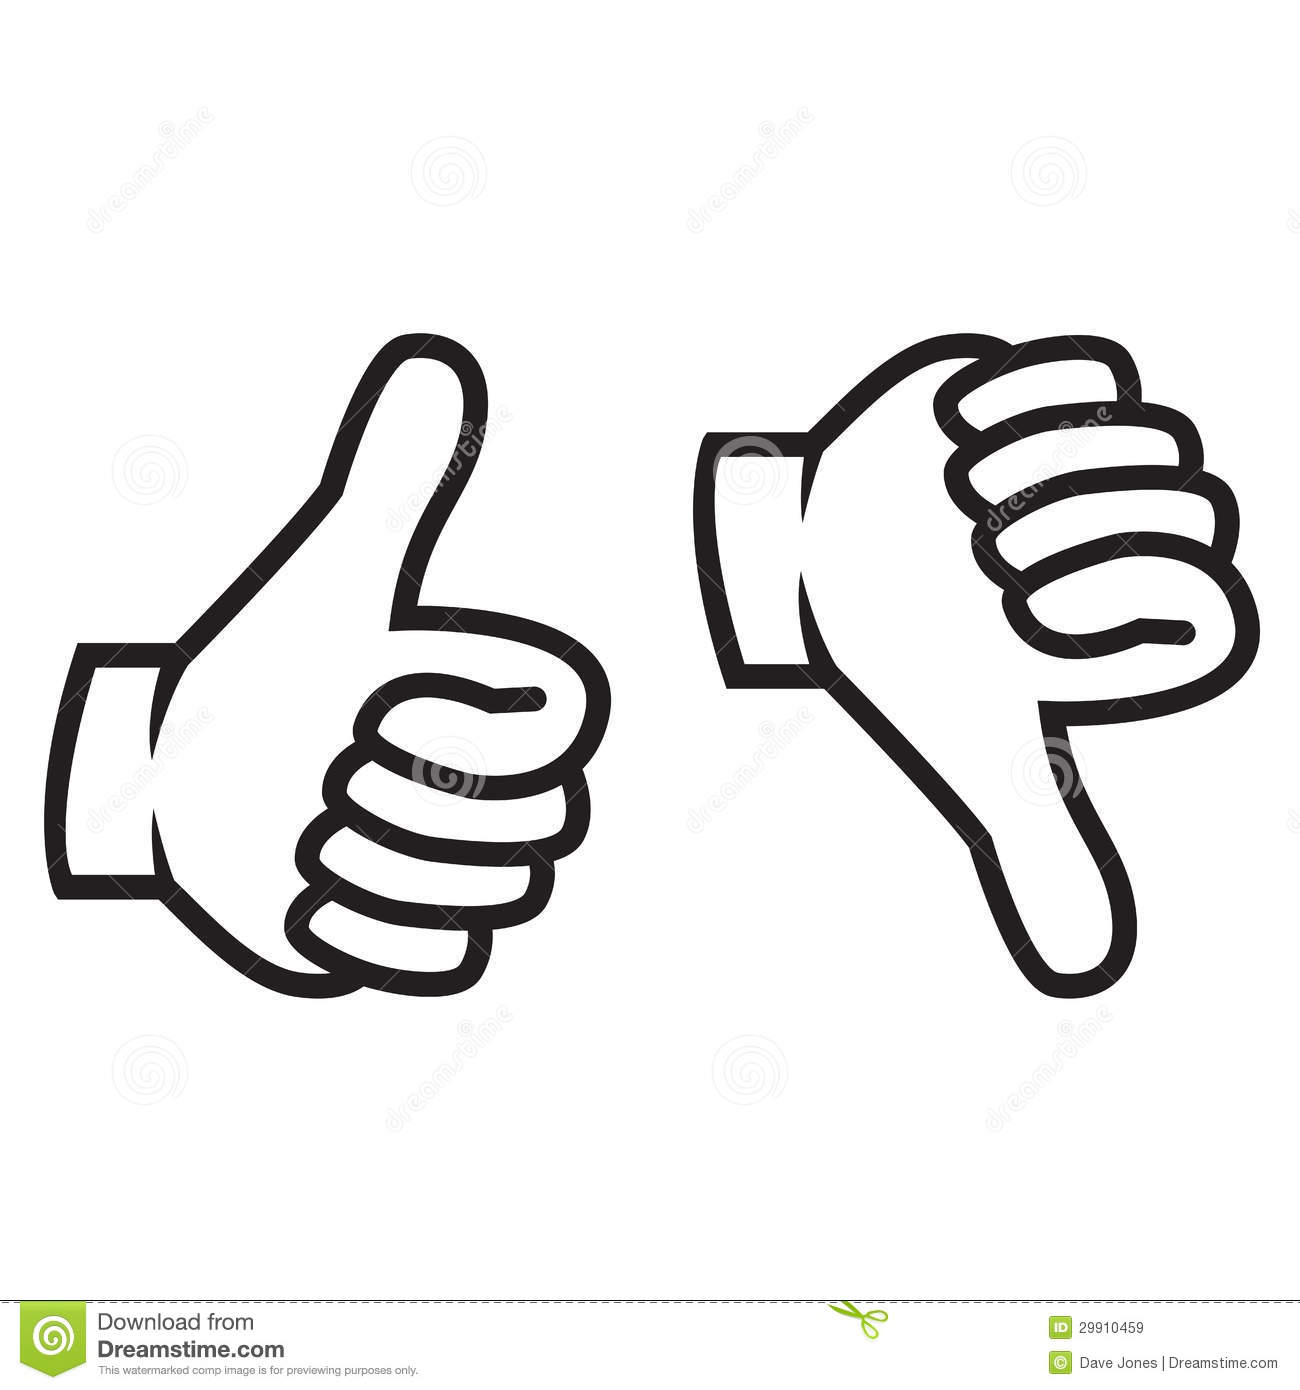 thumbs up and down gesture clipart panda free clipart images rh clipartpanda com free clipart thumbs up sign free clipart two thumbs up